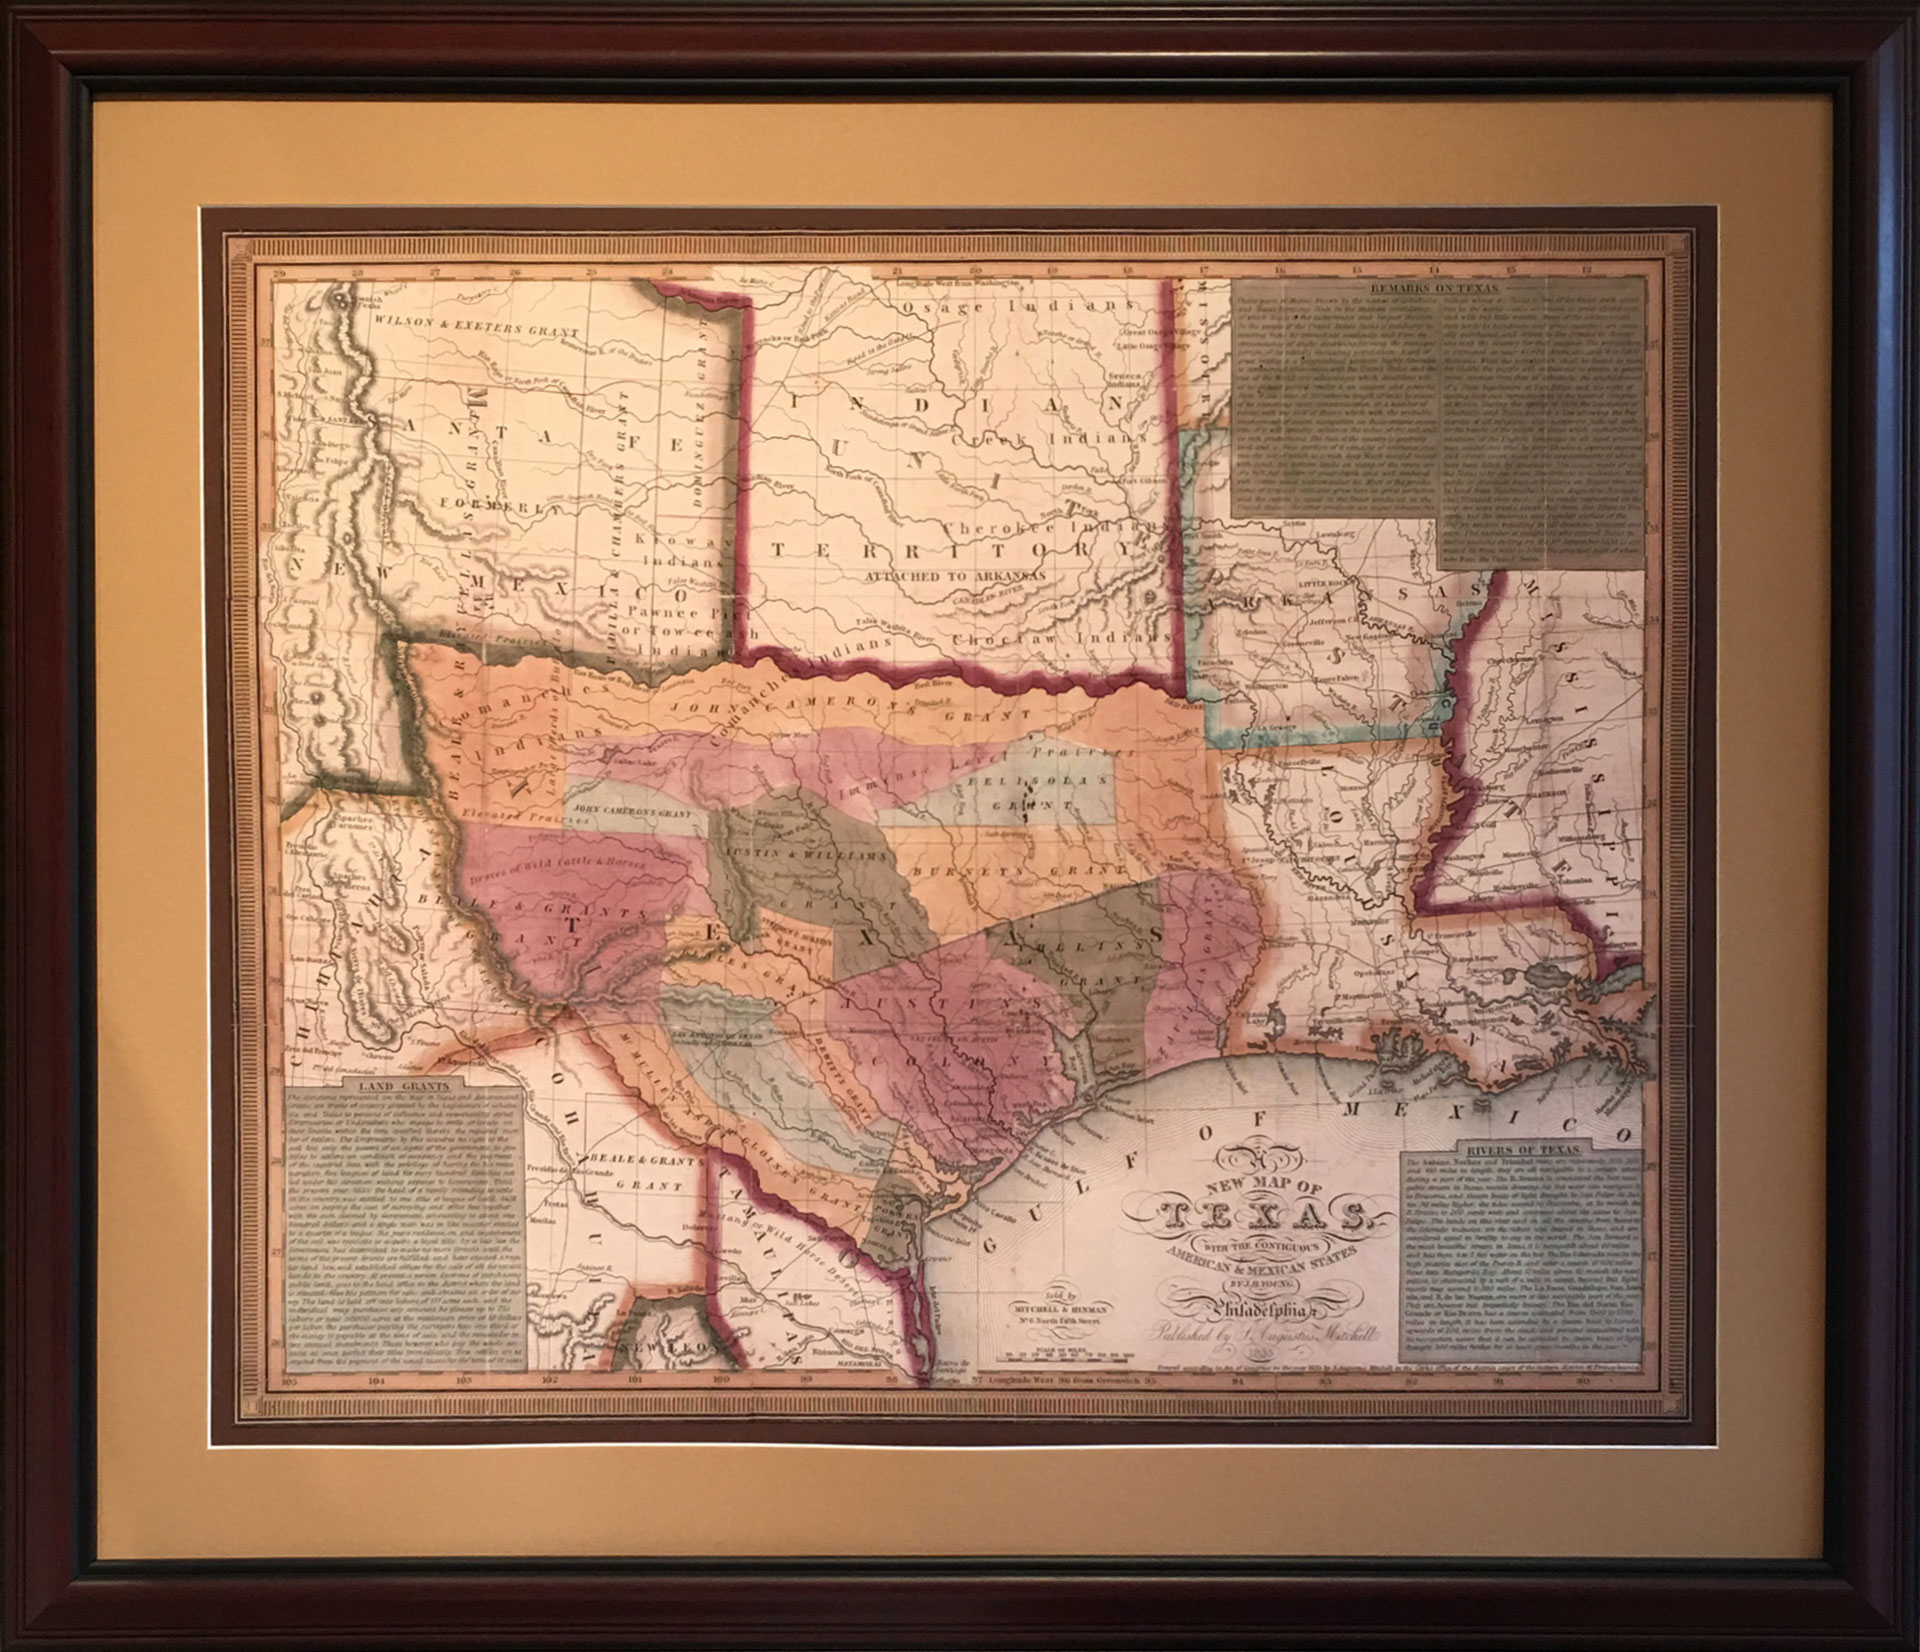 Map Of The Early Texas Land Grants - Gallery Of The Republic - Texas Map Framed Art